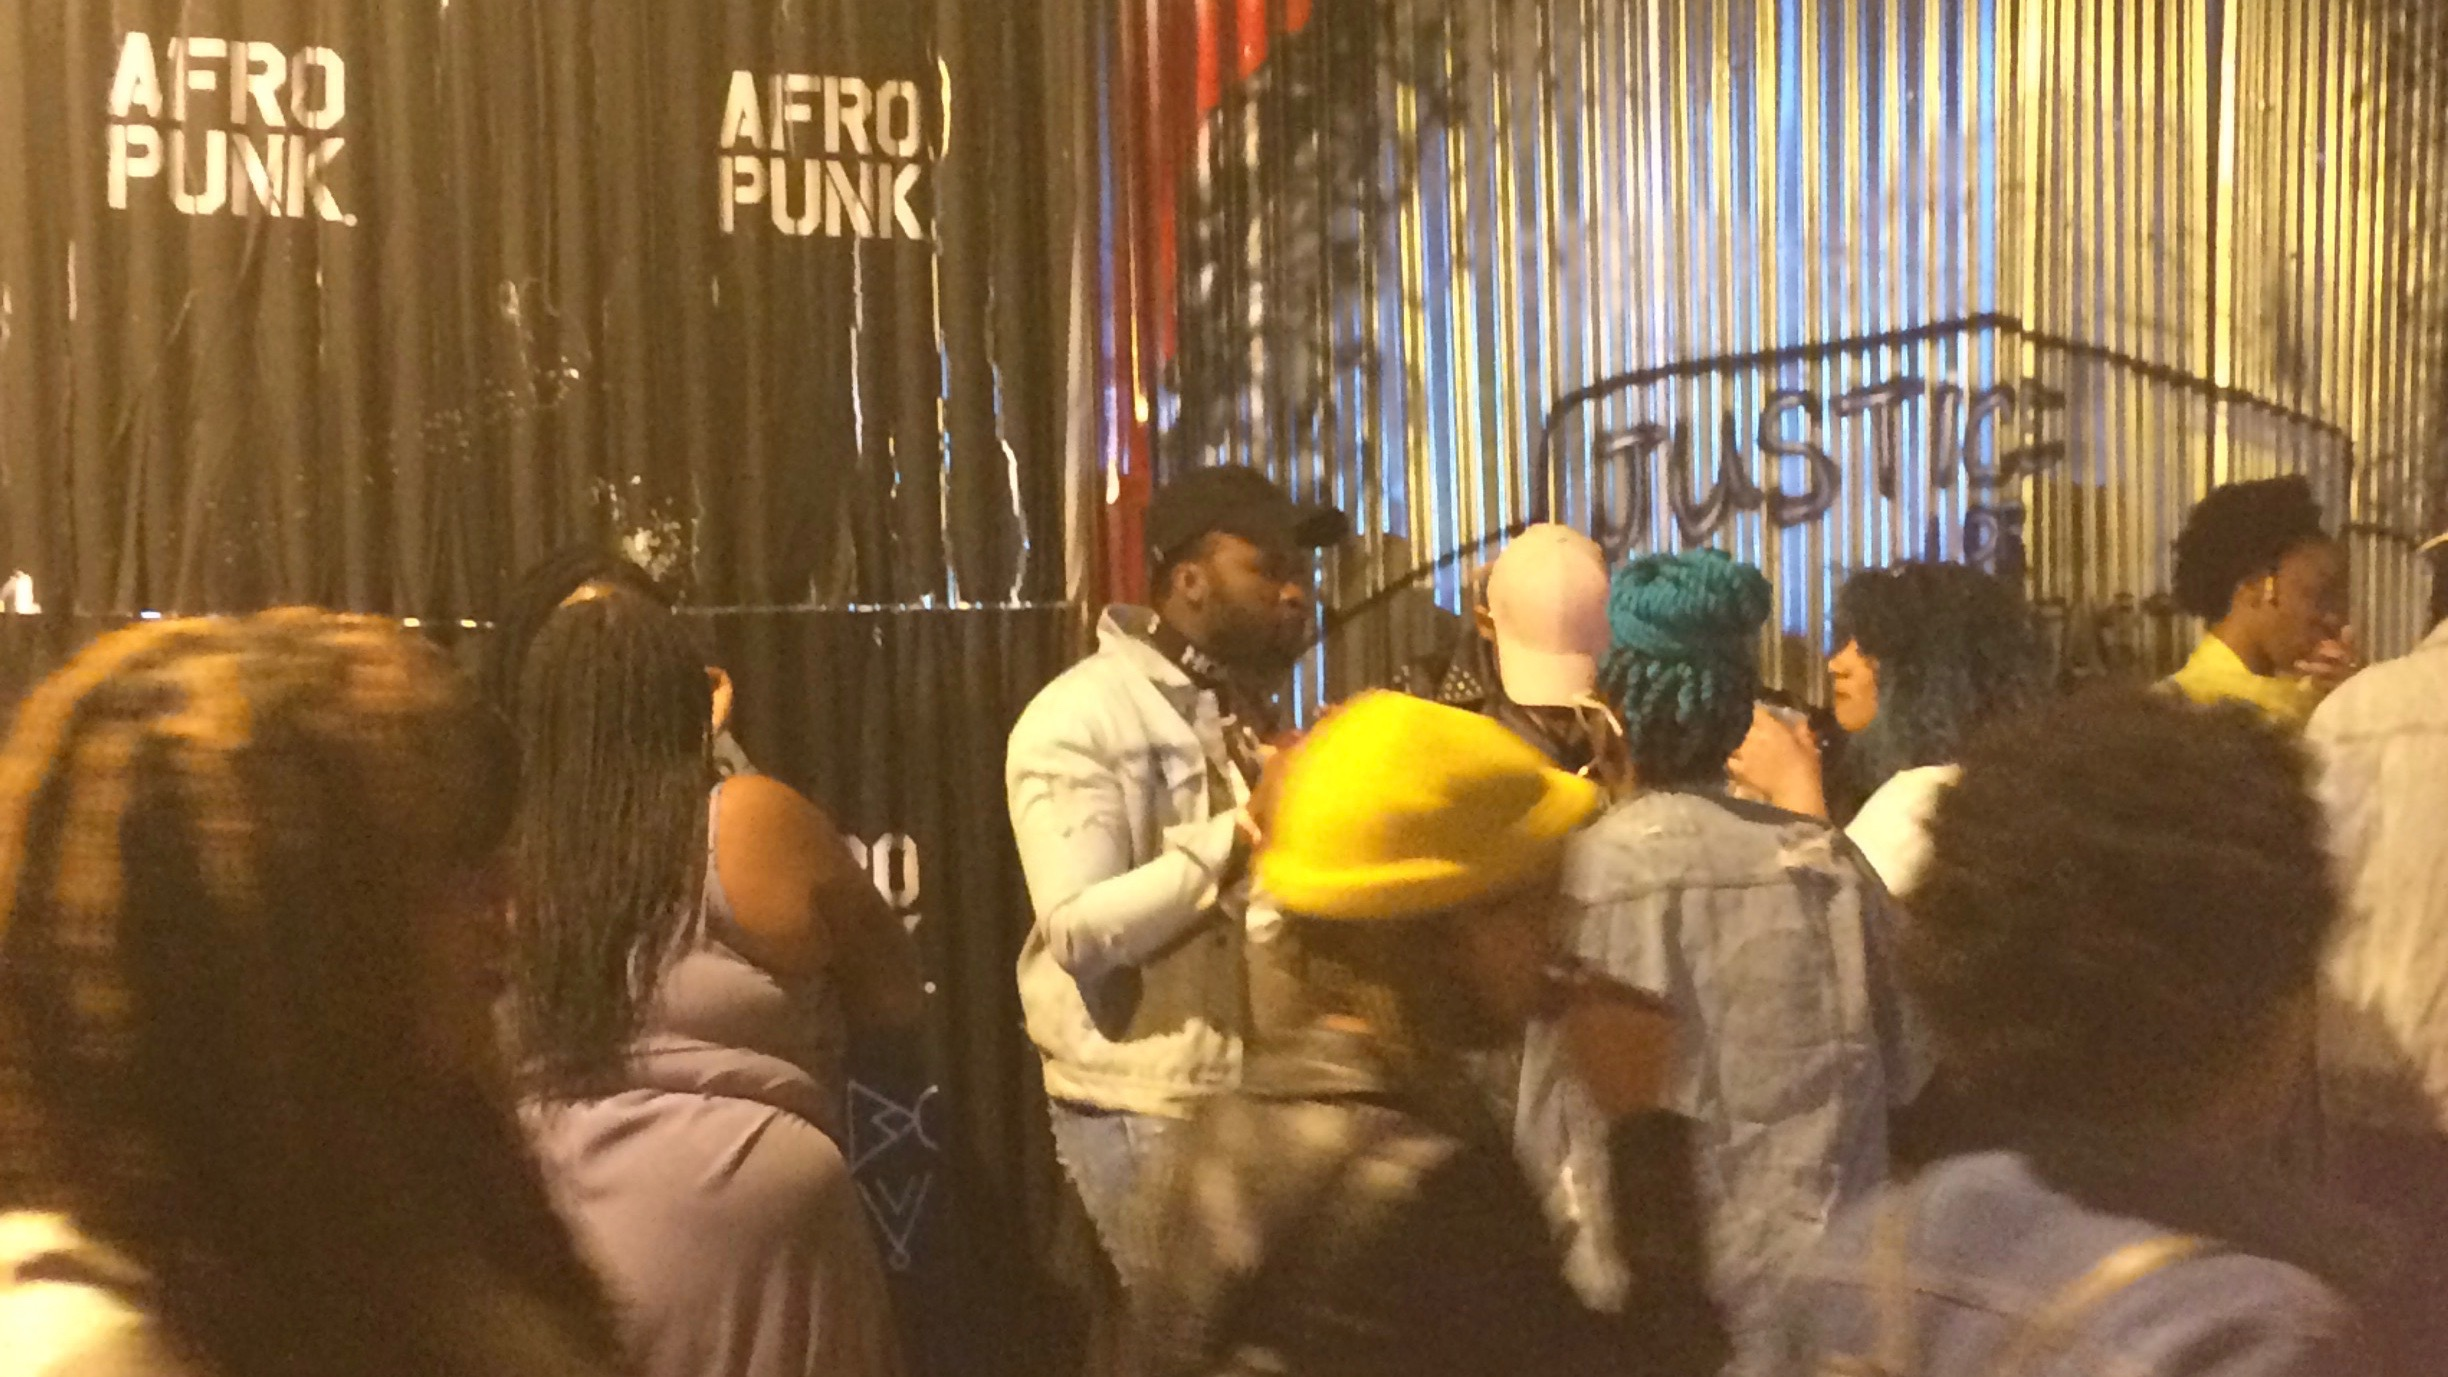 Being Photographed at Afropunk